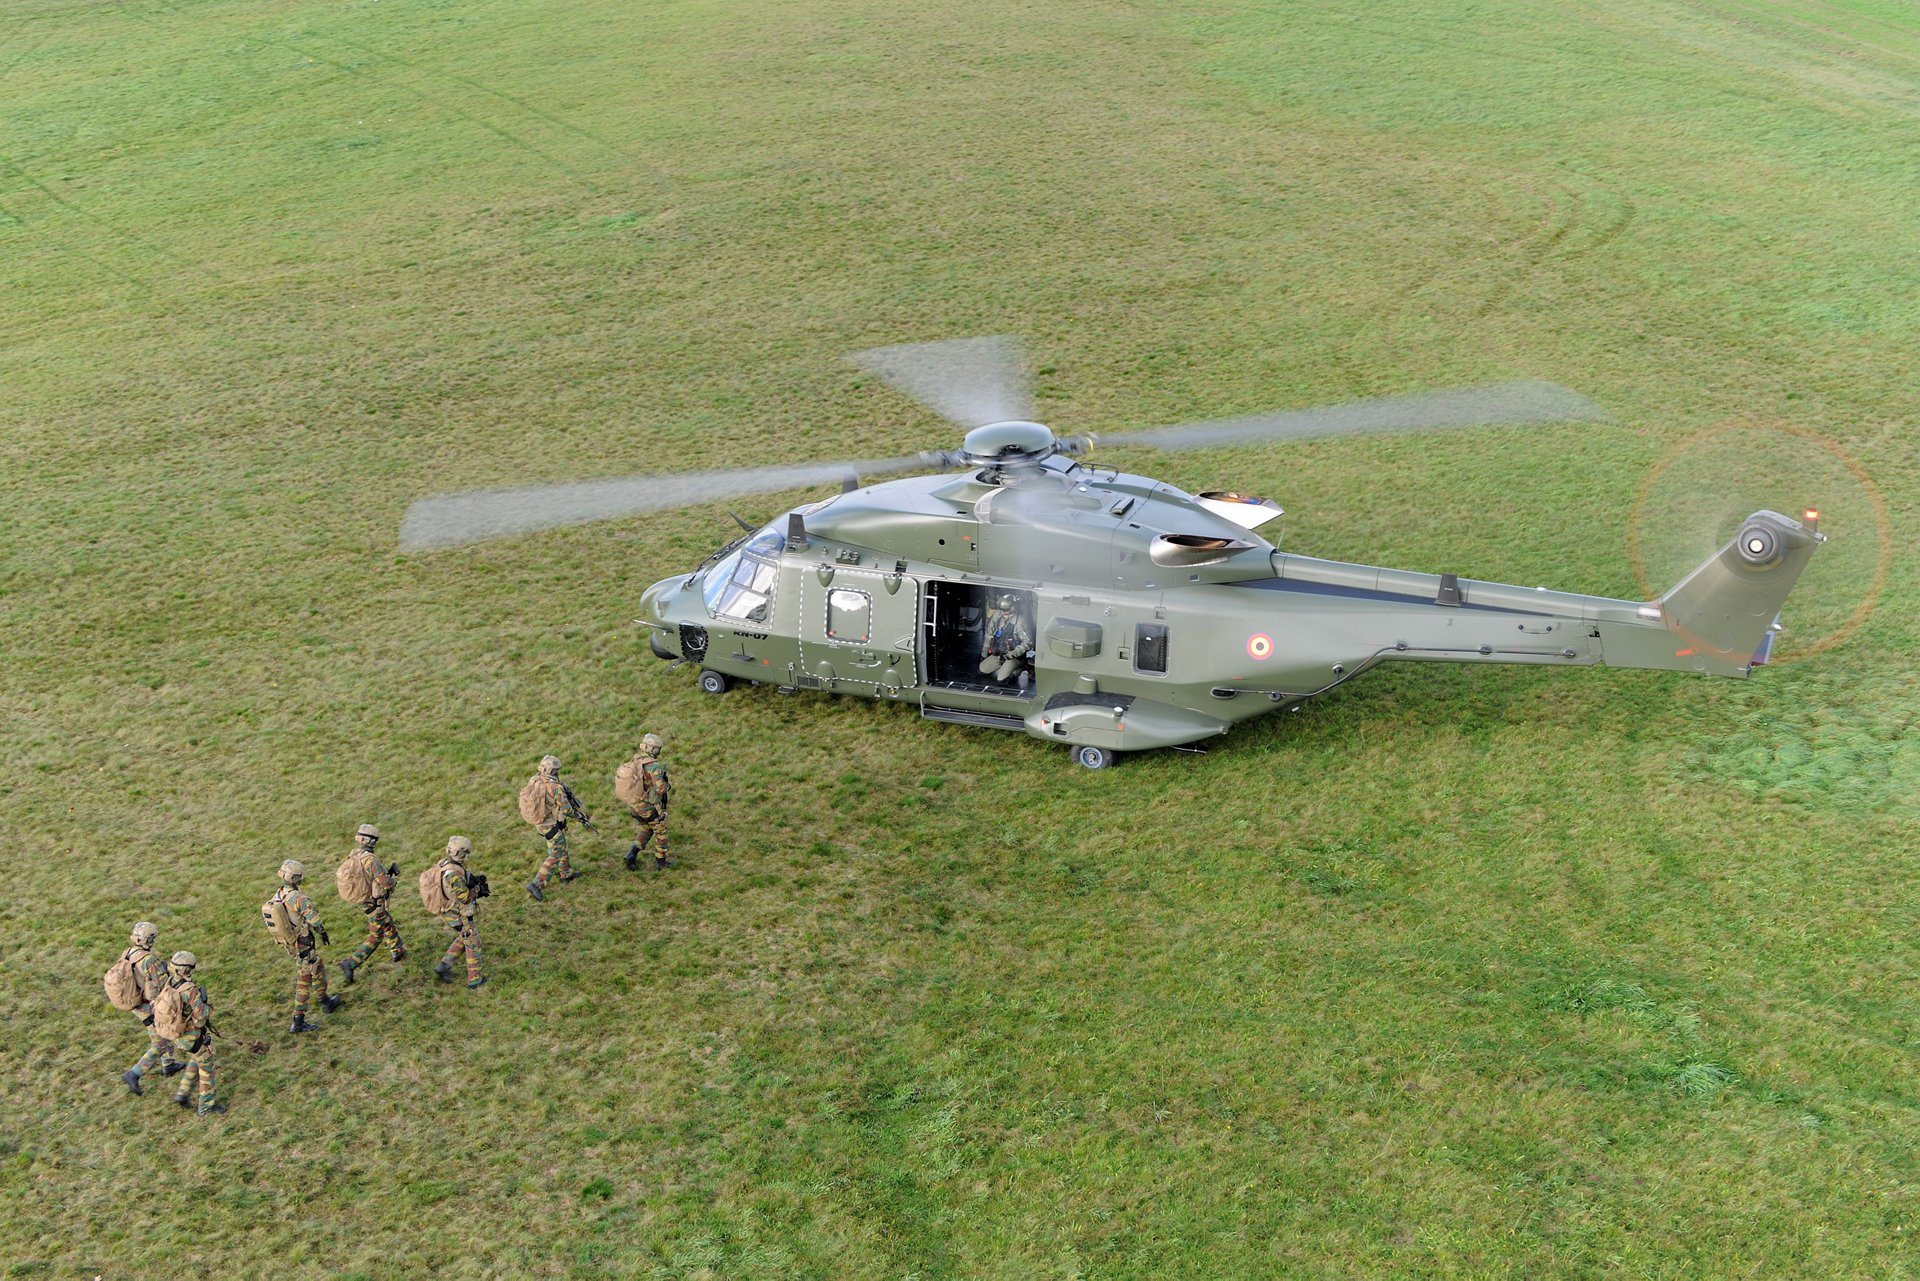 A group of seven military troops advance toward an on-ground NH90 helicopter.